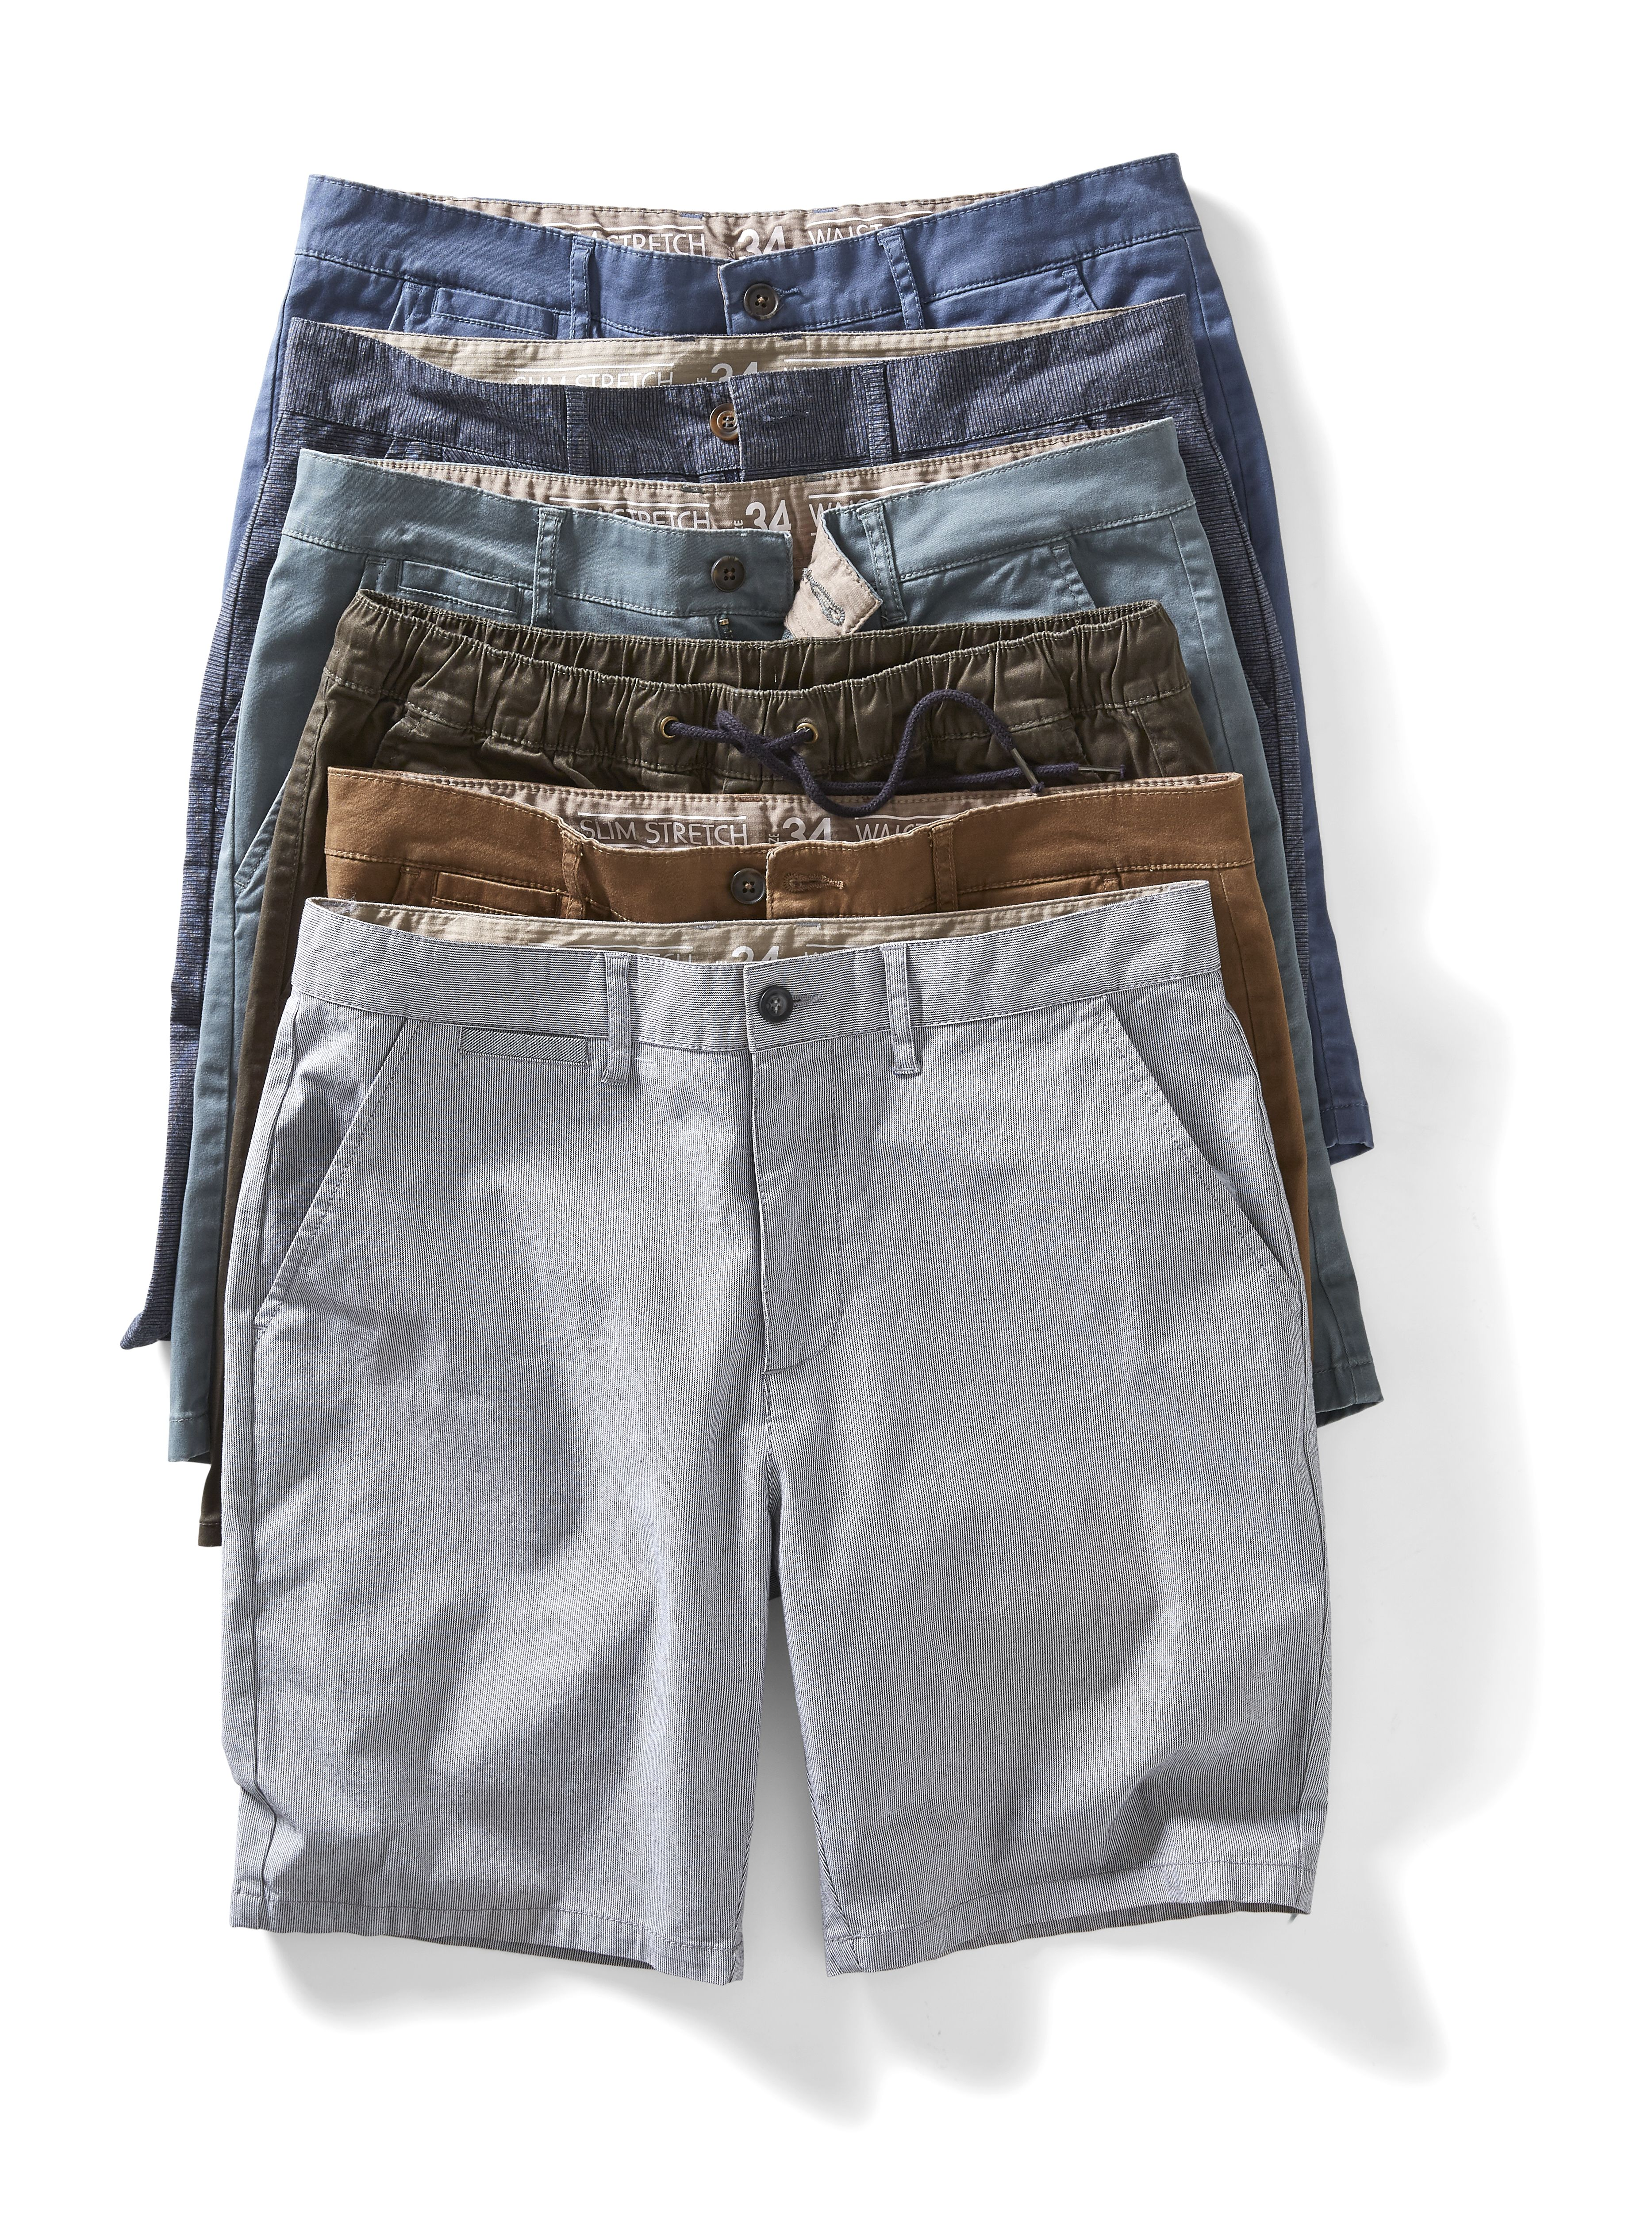 Kmart Men's Slim Fit Chino, sizes 30 - 40in, Men's Elastic Waist Jogger Shorts, sizes 30 - 40in, Men's Slim Fit Stripe Chino, sizes 30 - 40in, RRP$25ea